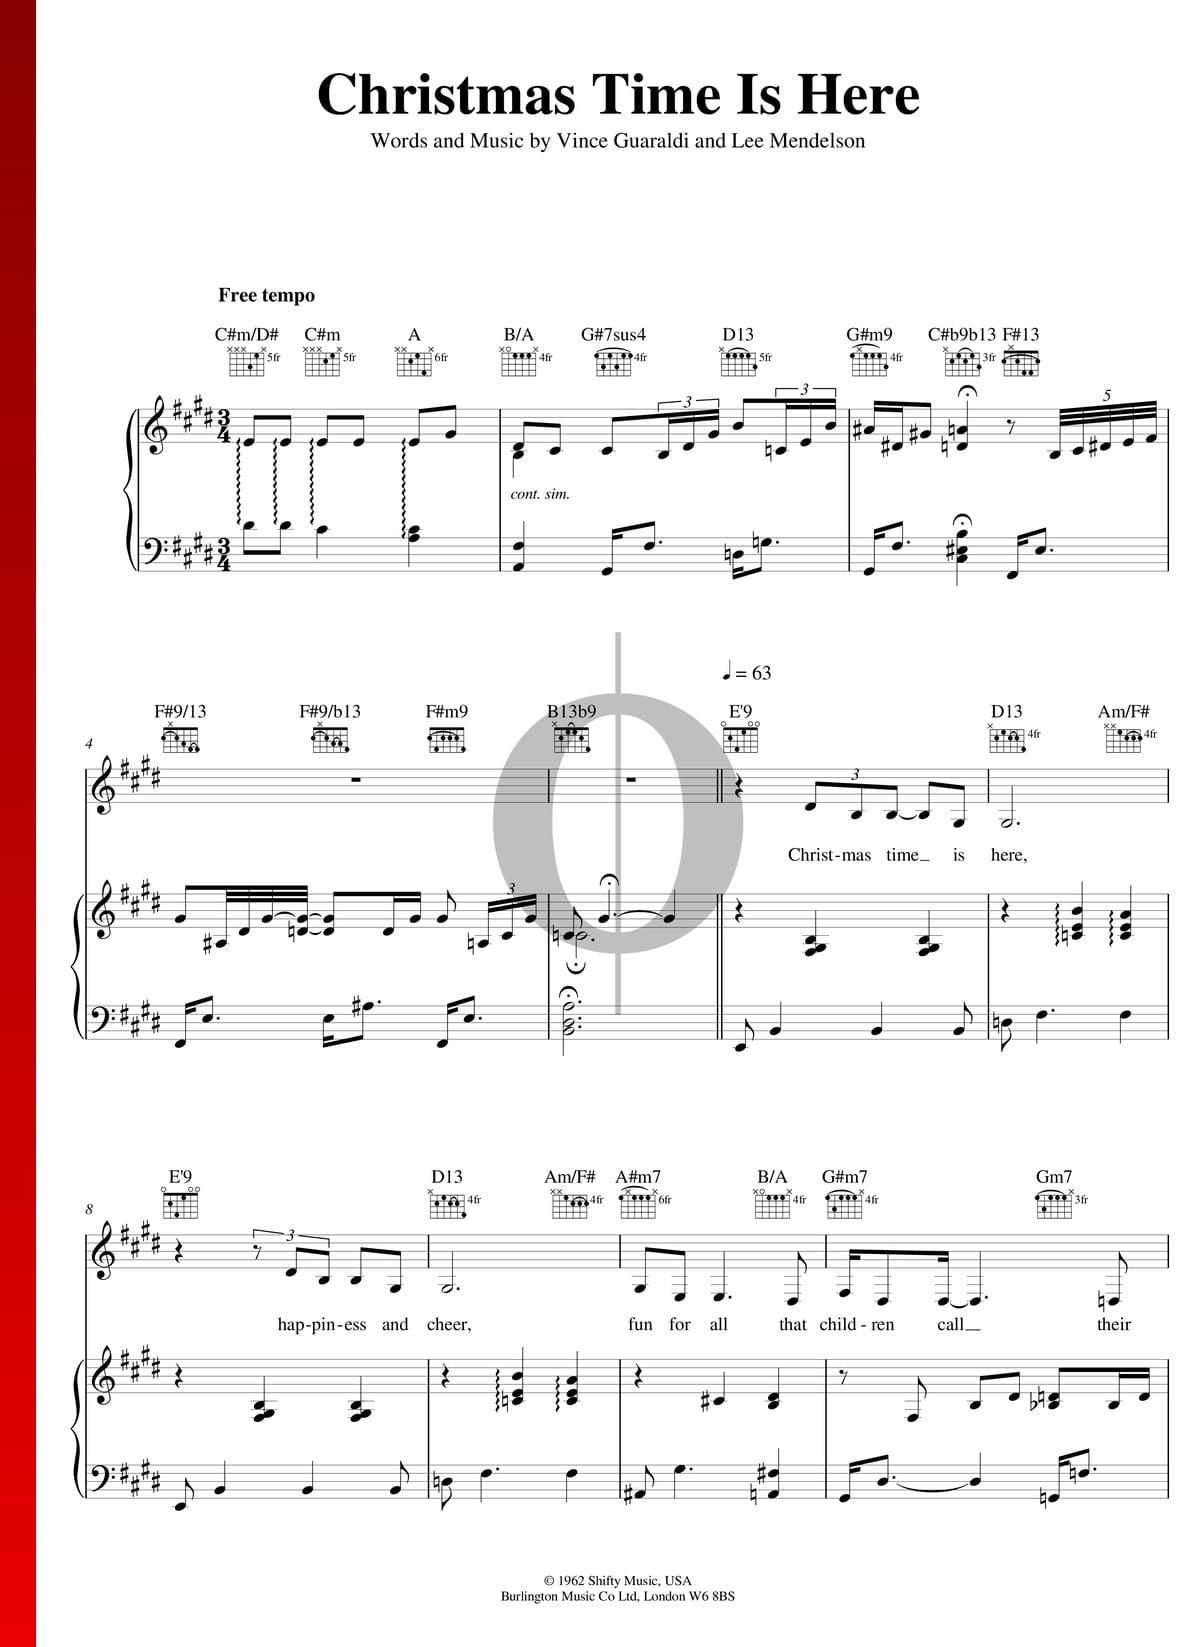 Christmas Time Is Here Piano.Christmas Time Is Here Sheet Music Piano Voice Guitar